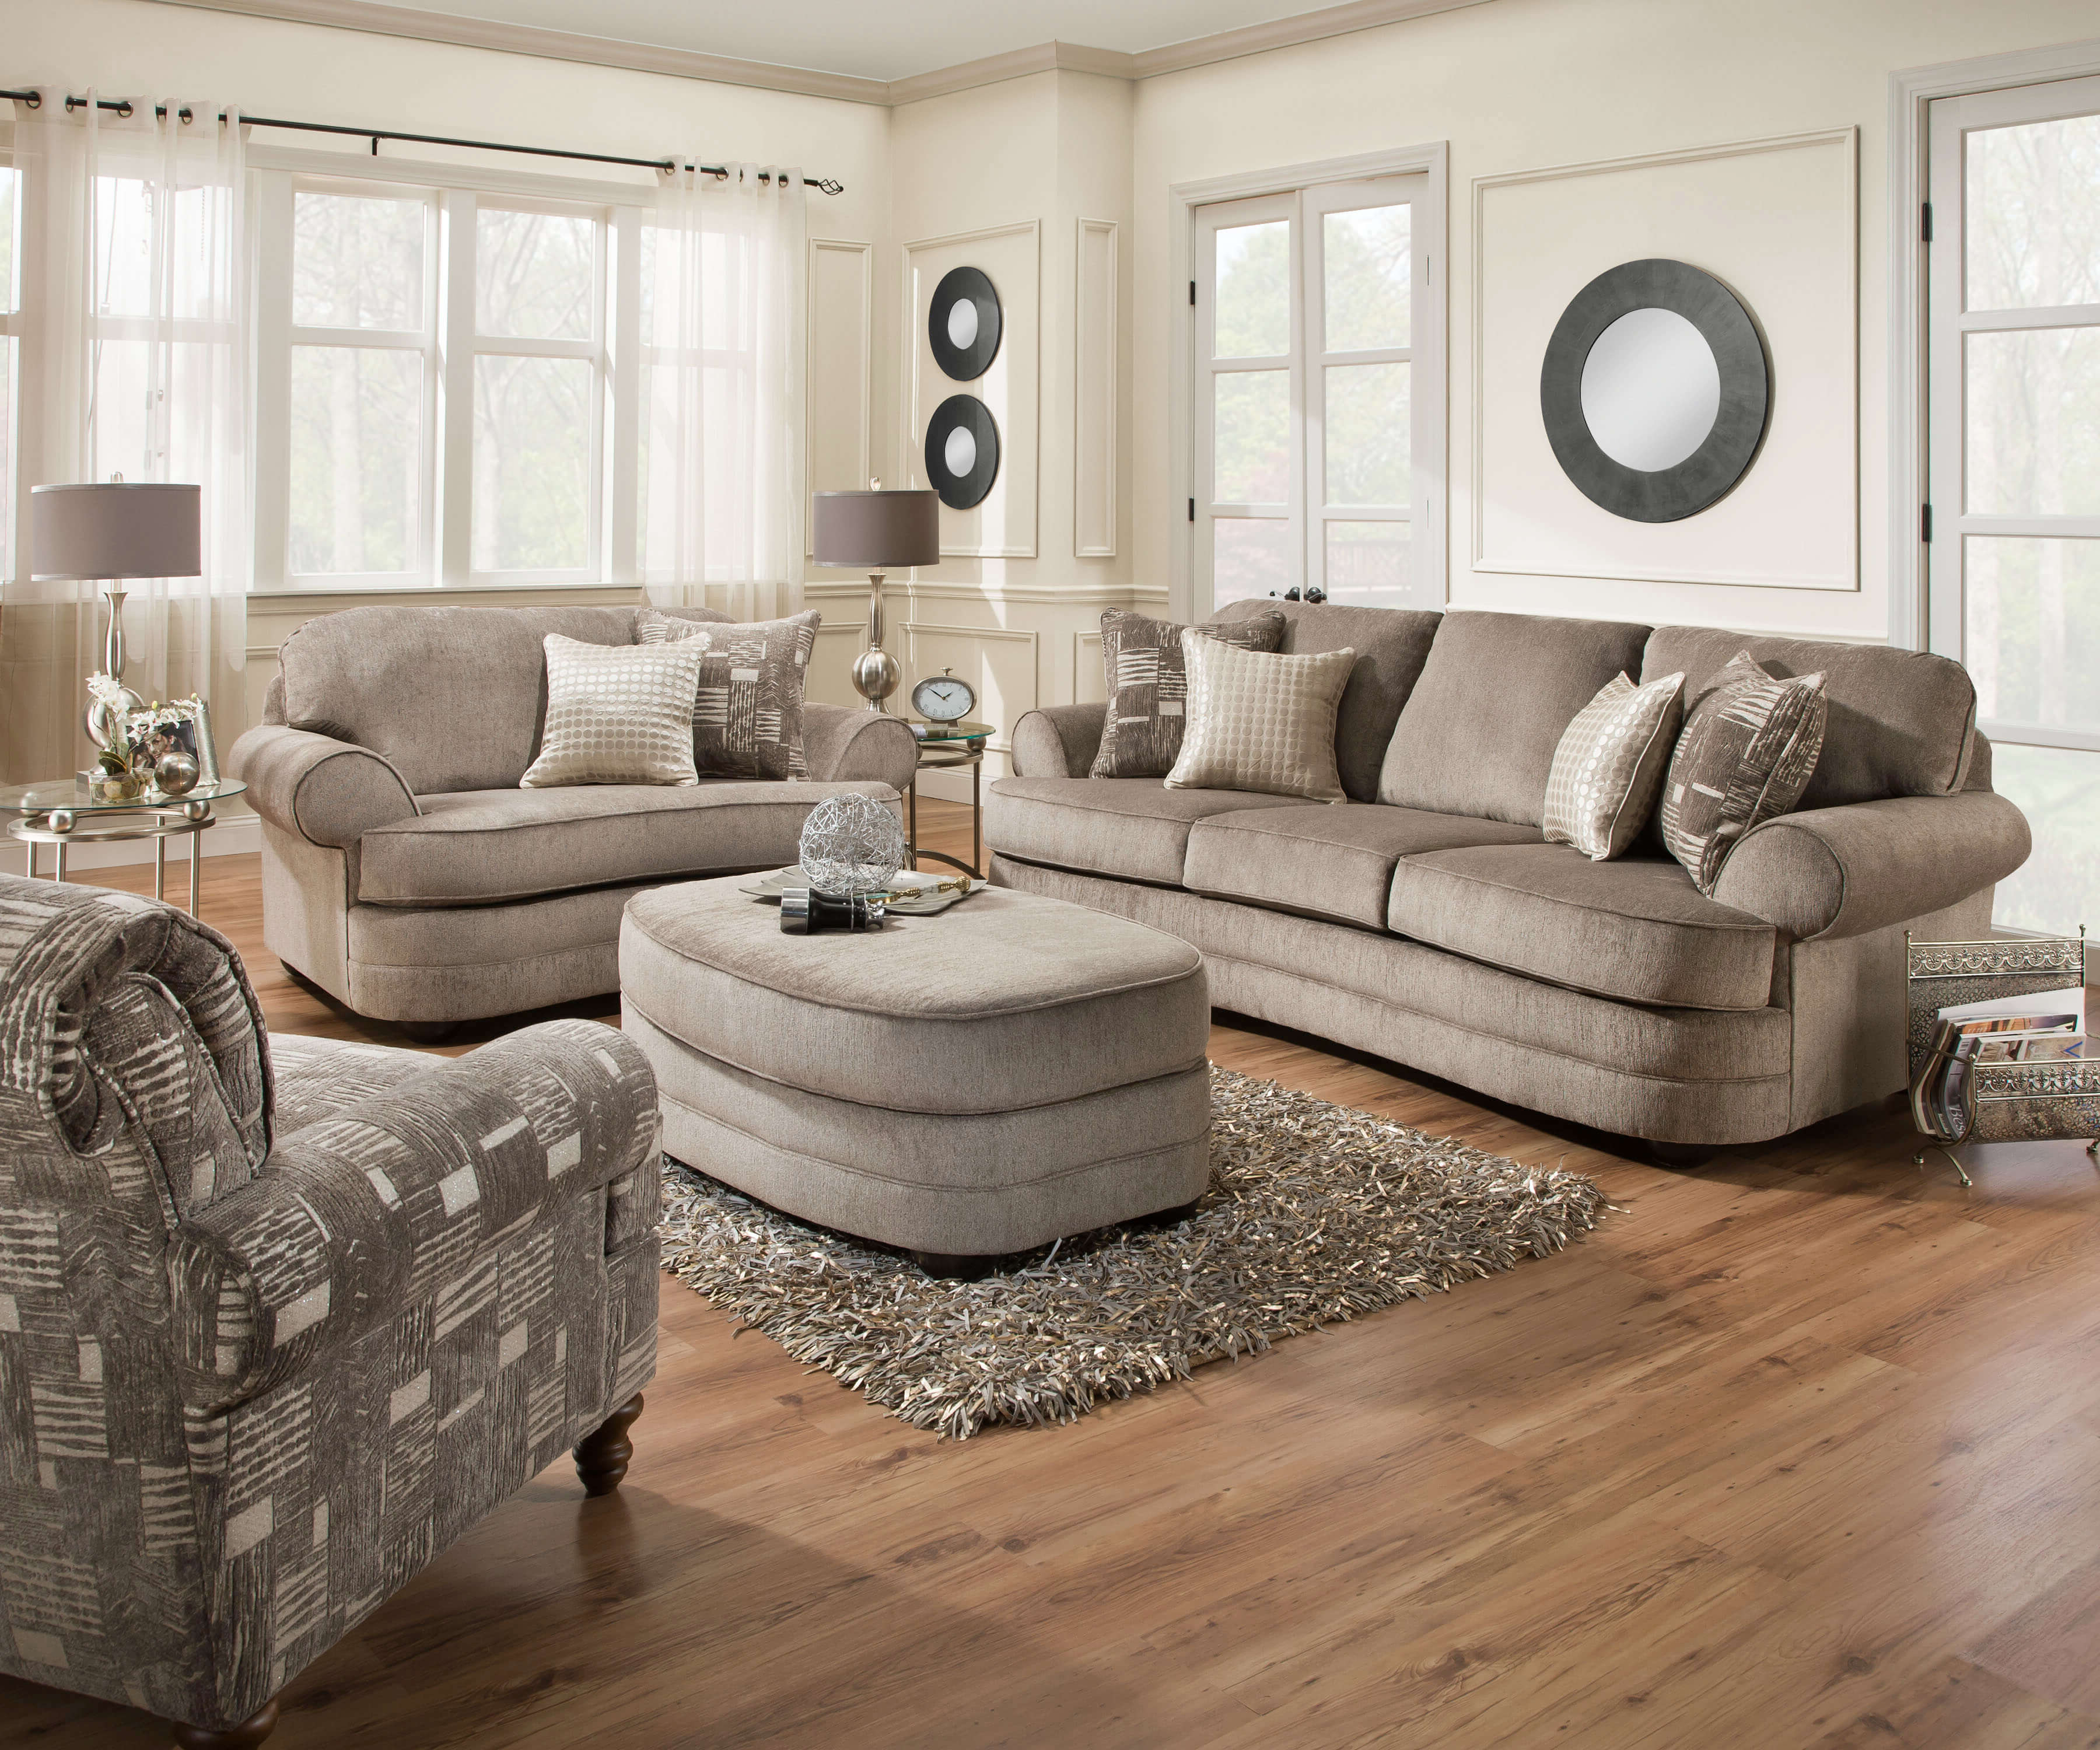 Well Known Sofa And Chair Set Throughout Kingsley Pewter Sofa, Chair 1/2, And Ottoman Setsimmons (View 15 of 20)